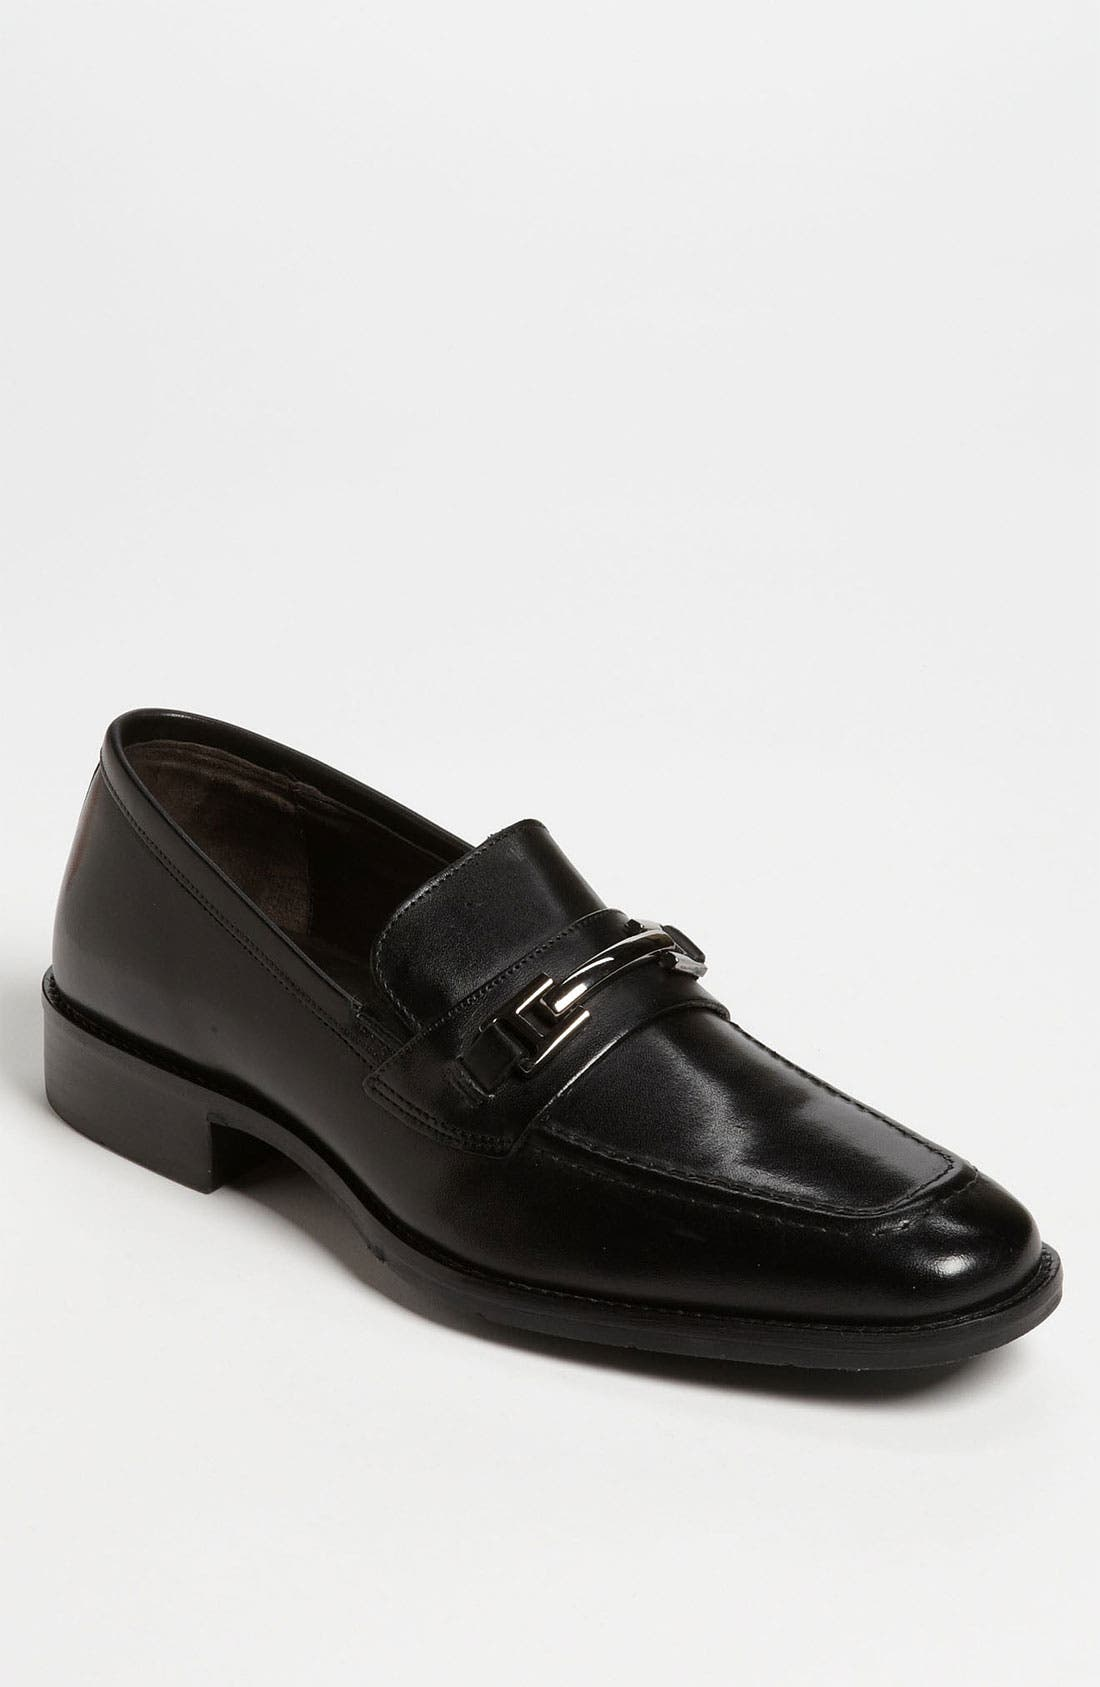 Main Image - Johnston & Murphy 'Larsey' Bit Loafer (Online Only)